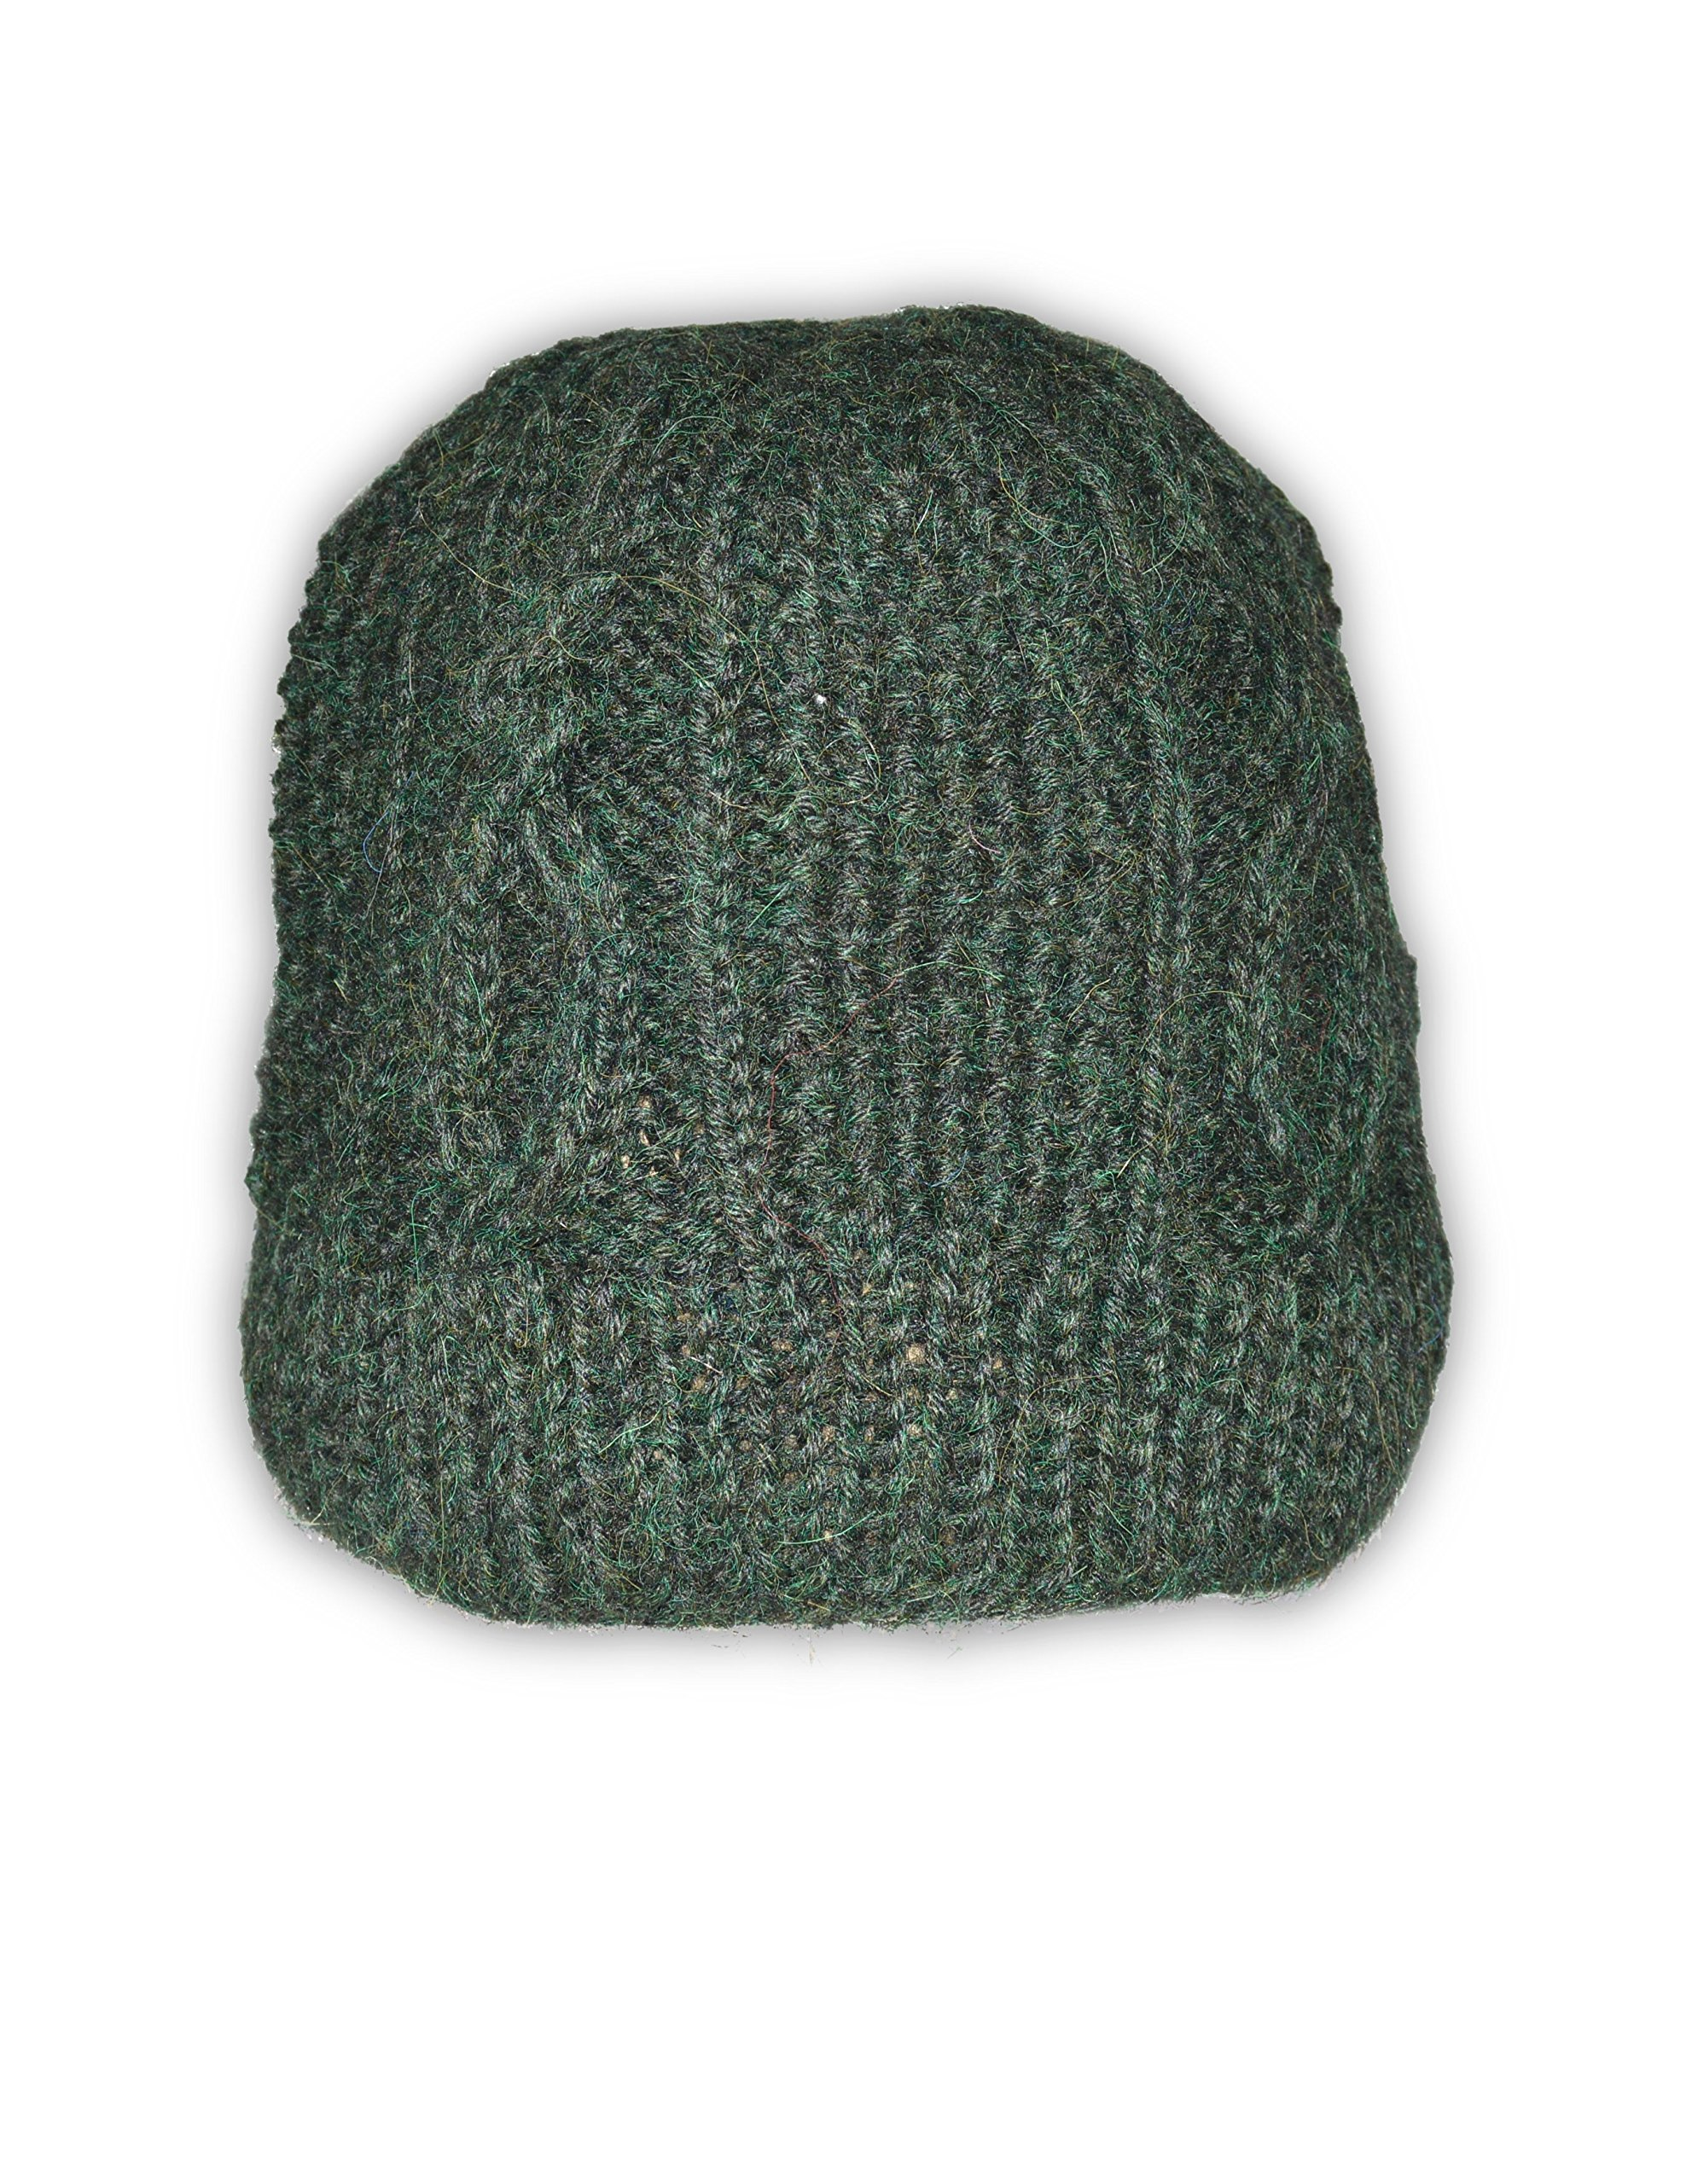 Invisible World Women's 100% Alpaca Wool Hand Knit Cabled Beanie Hat Dark Green